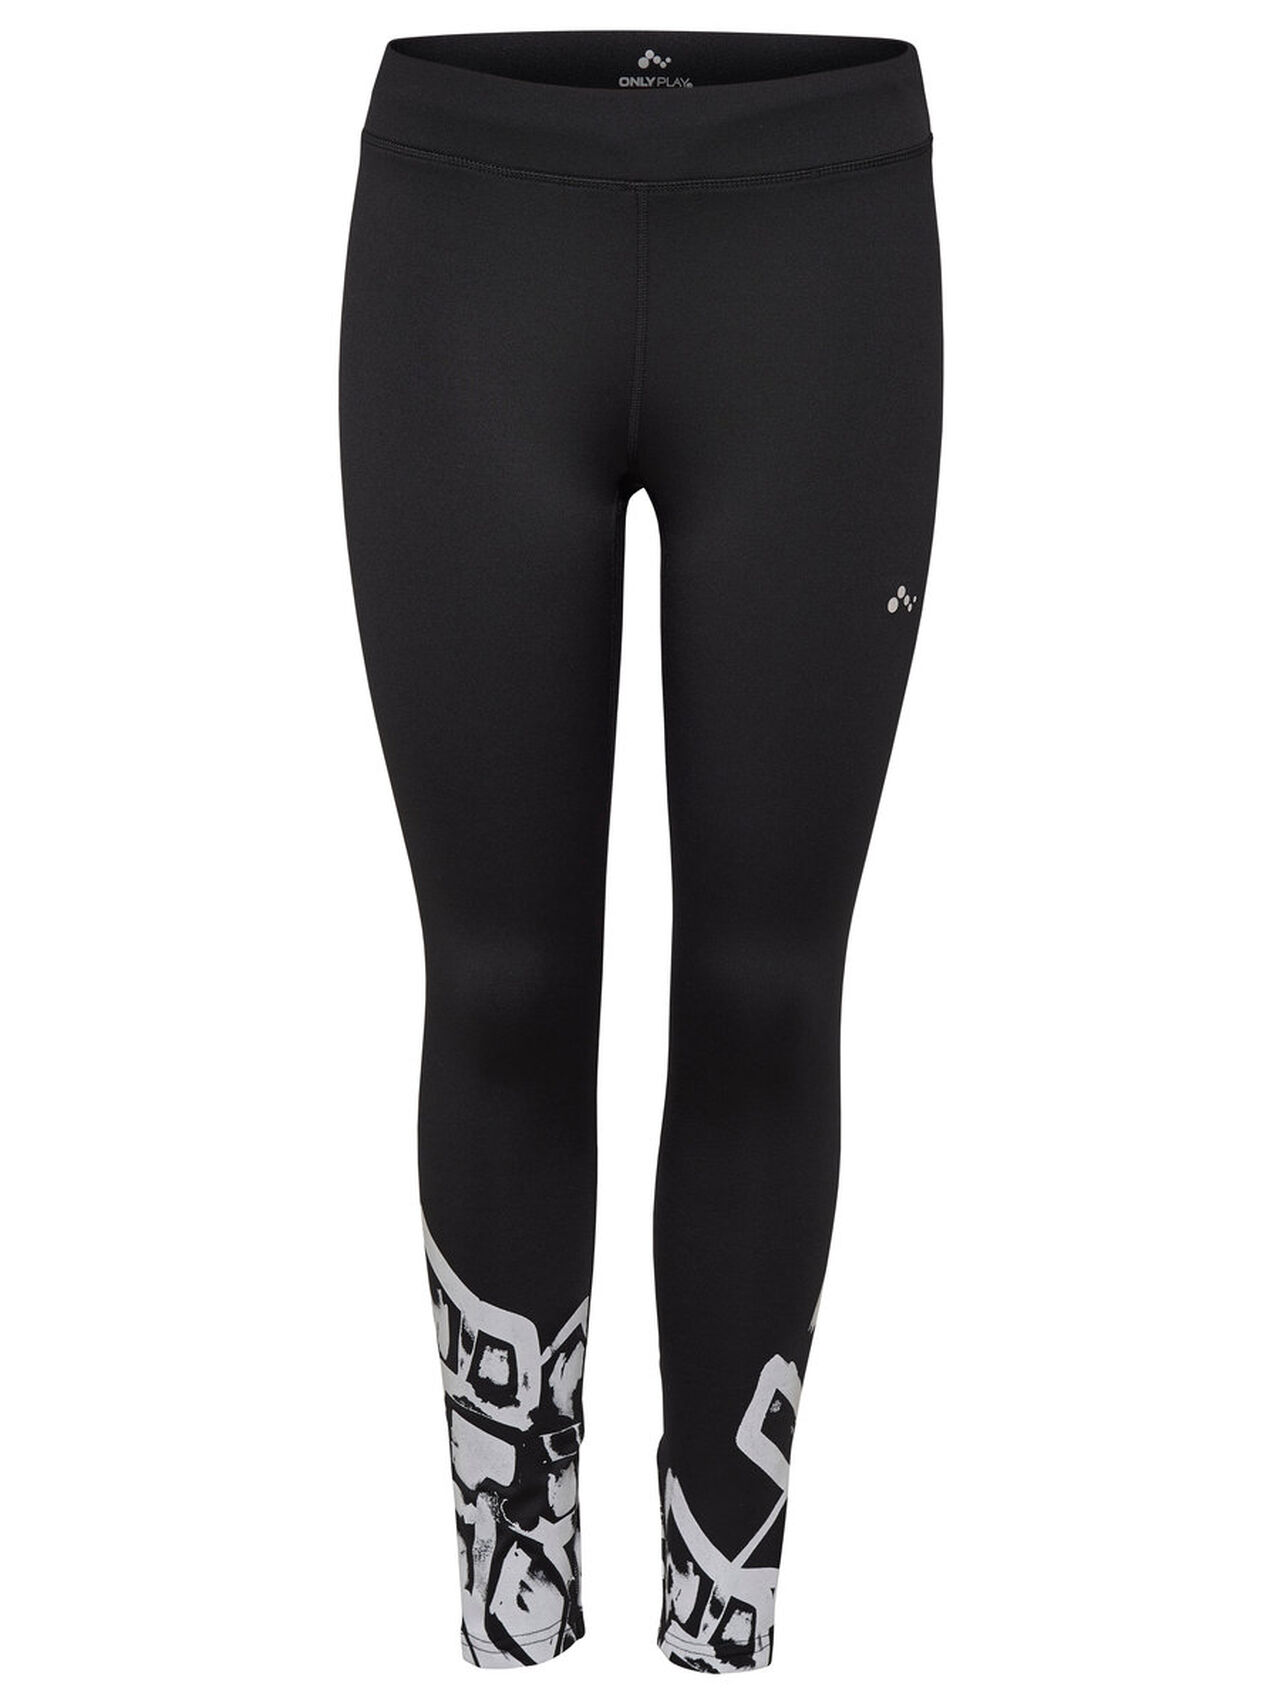 ONLY Brushed Running Tights Women Black